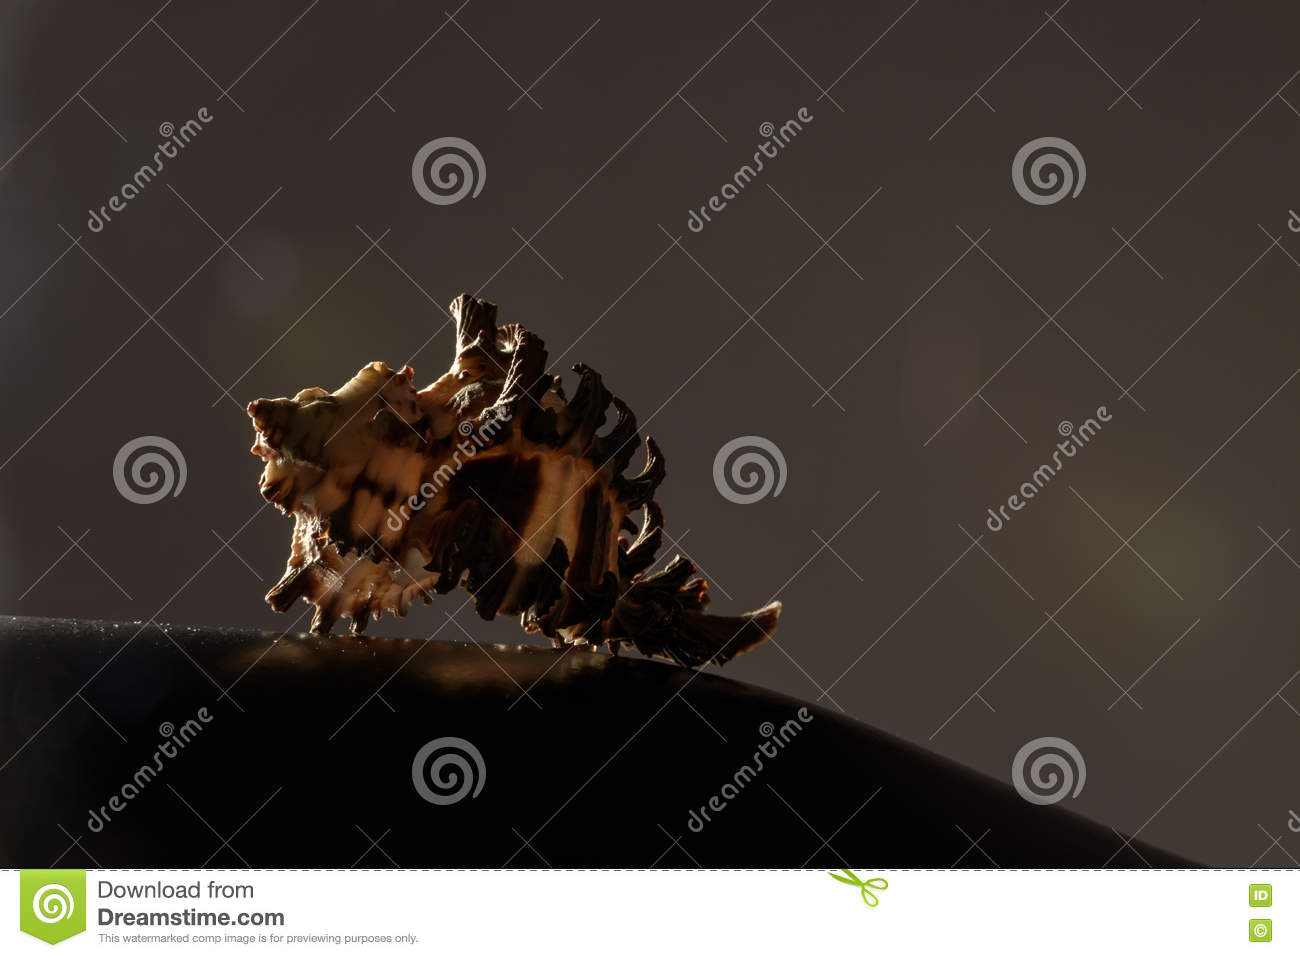 Artistic sea shell photography on dark background